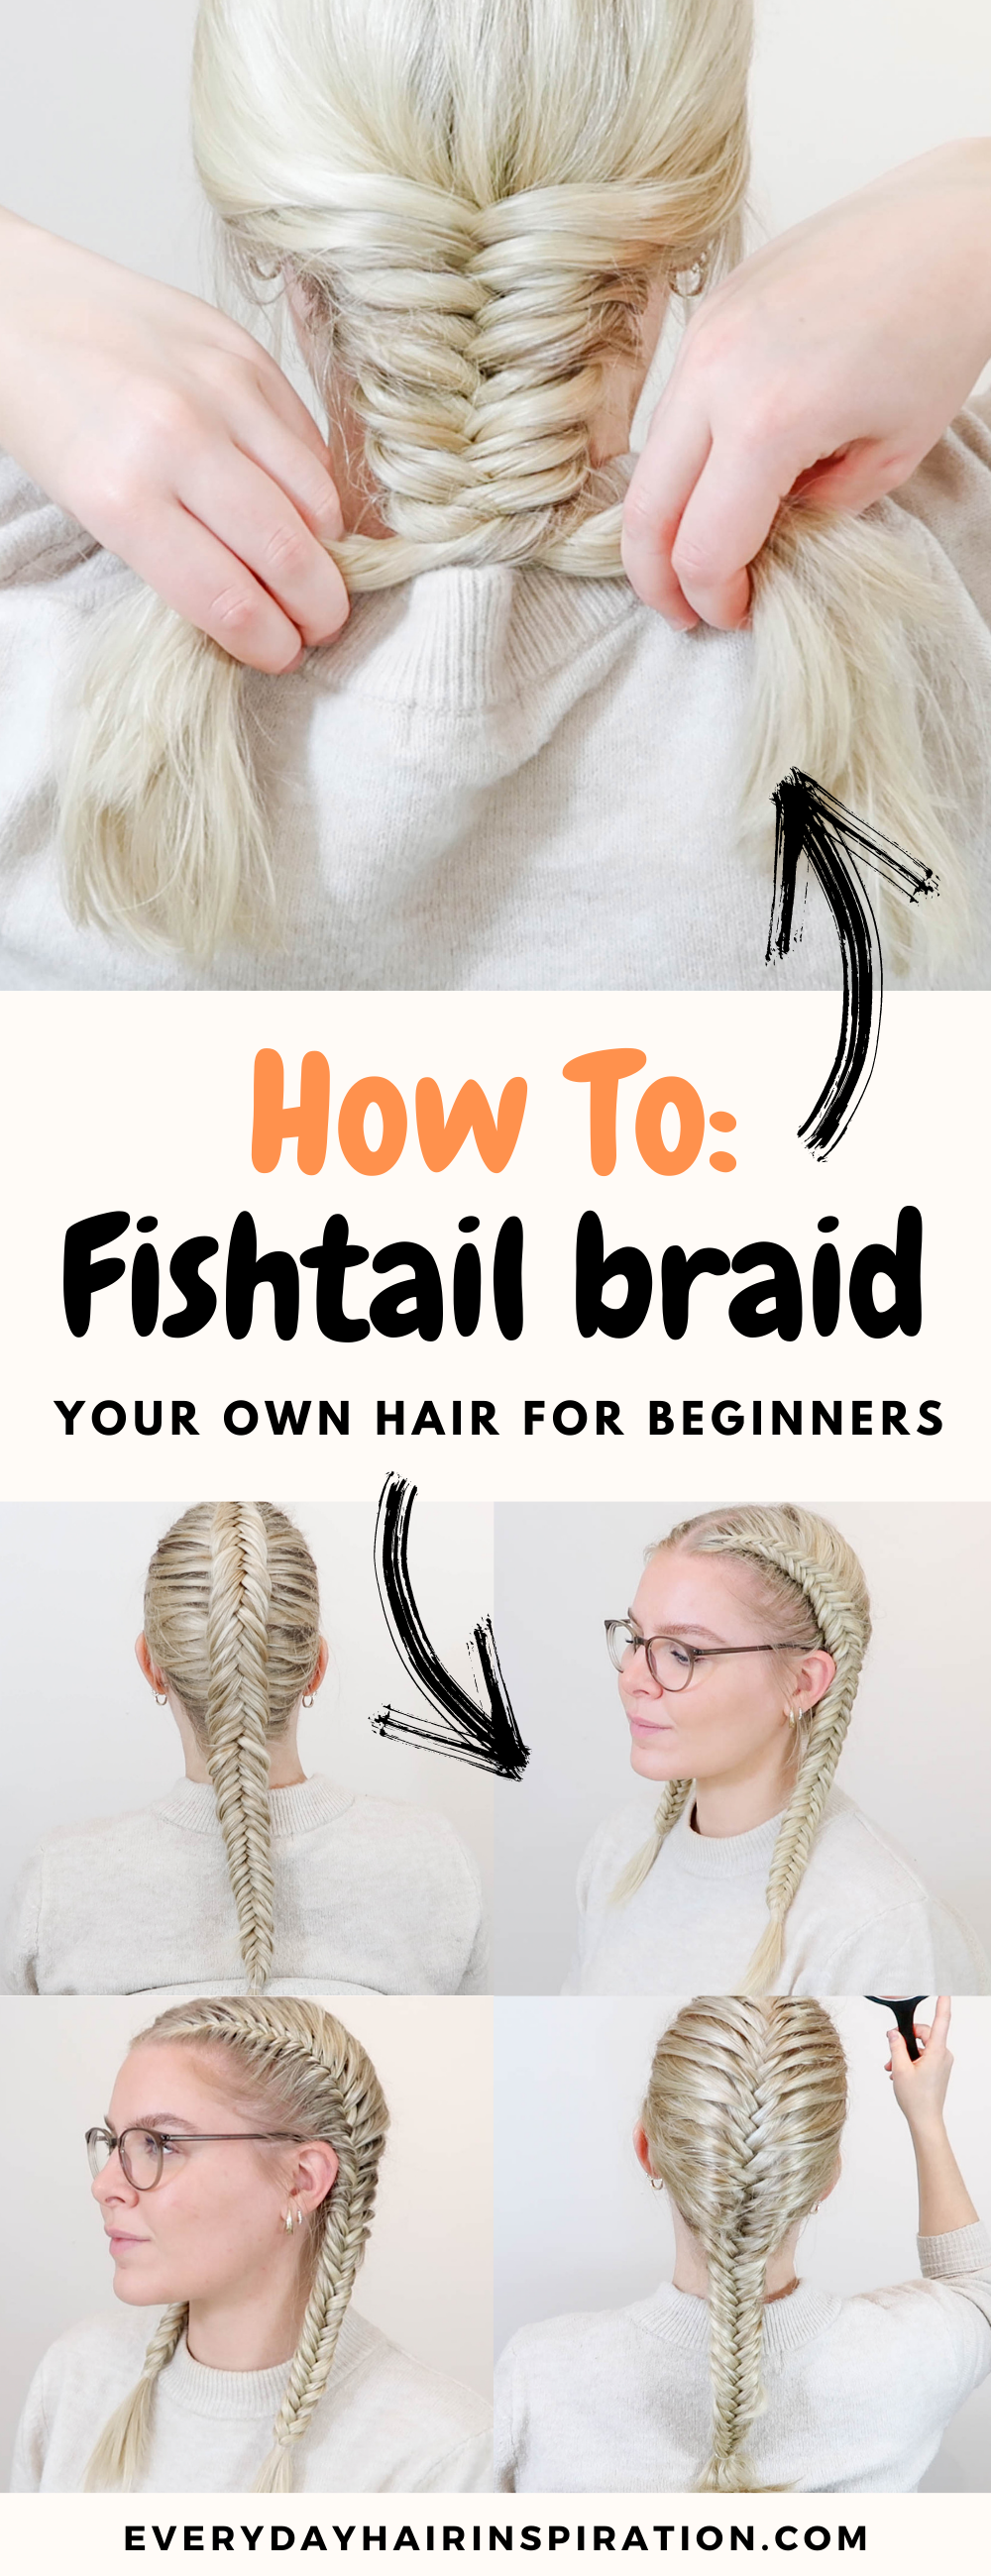 """Square picture of a basic fishtail braid with the text: """"How to: fishtail braid your own hair for beginners"""" under the picture. Under the text there is 4 square pictures of different style fishtail braids."""